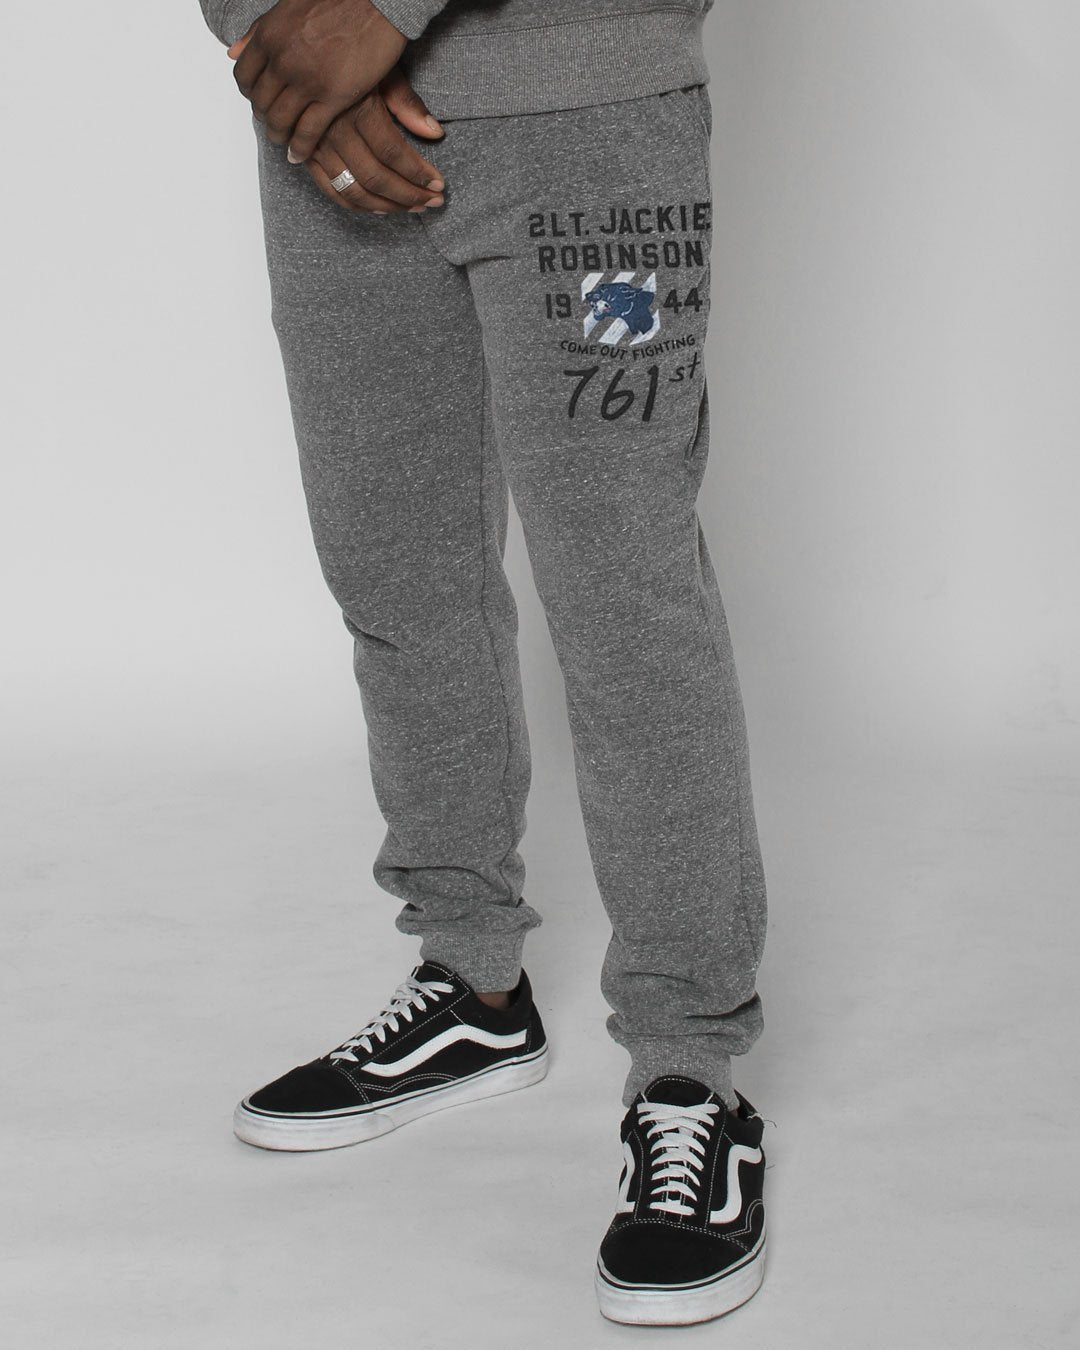 Jackie Robinson Come Out Fighting Sweatpants - Roots of Inc dba Roots of Fight